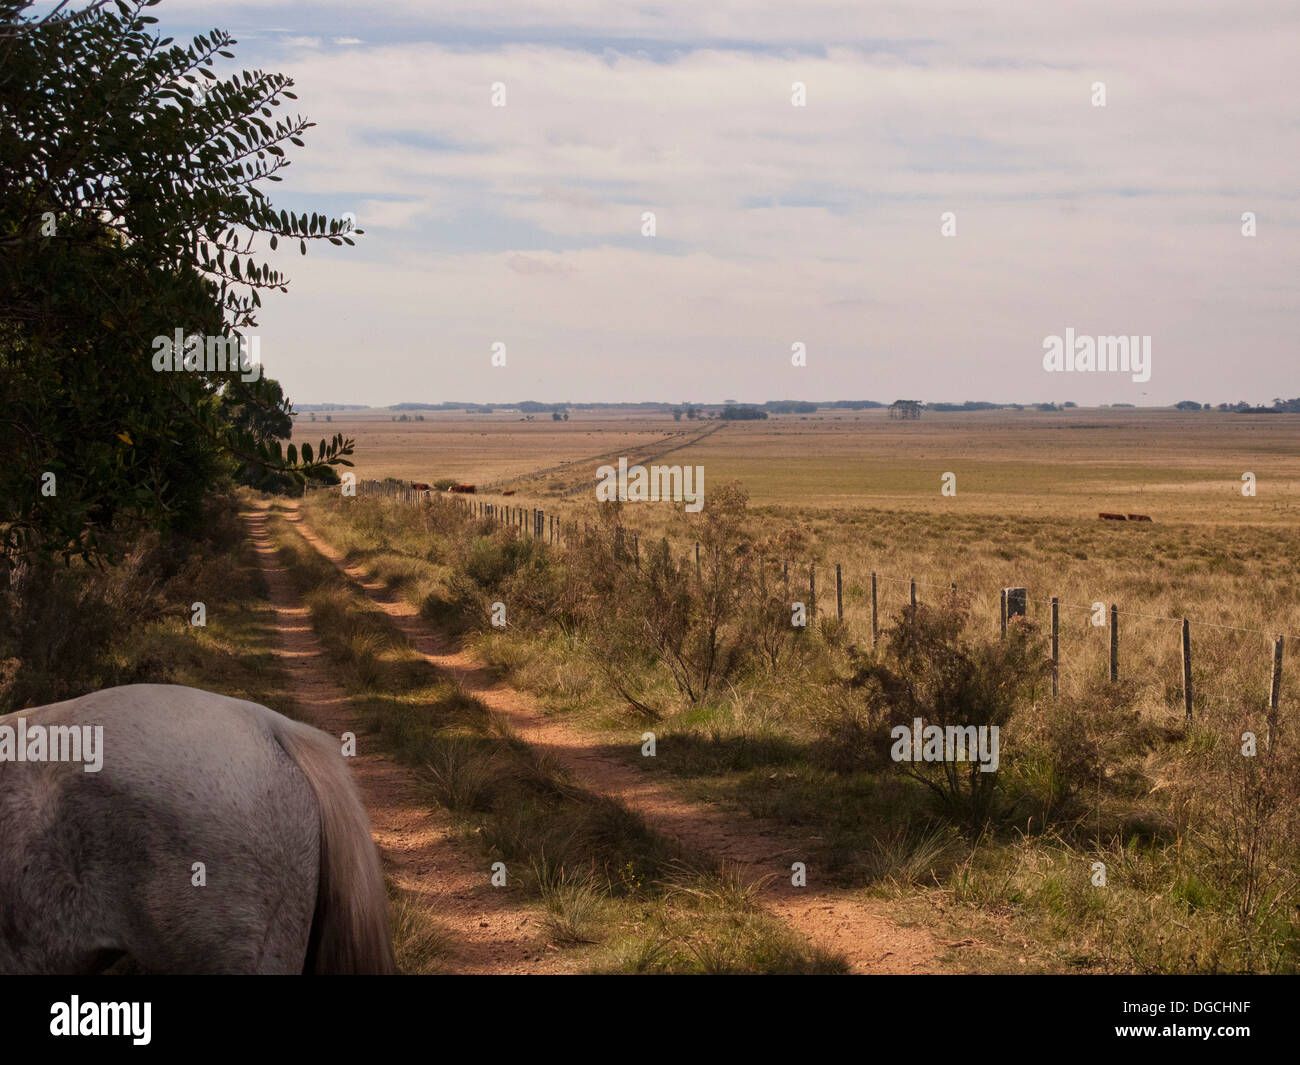 Criollo horse on dirt track, Uruguay - Stock Image